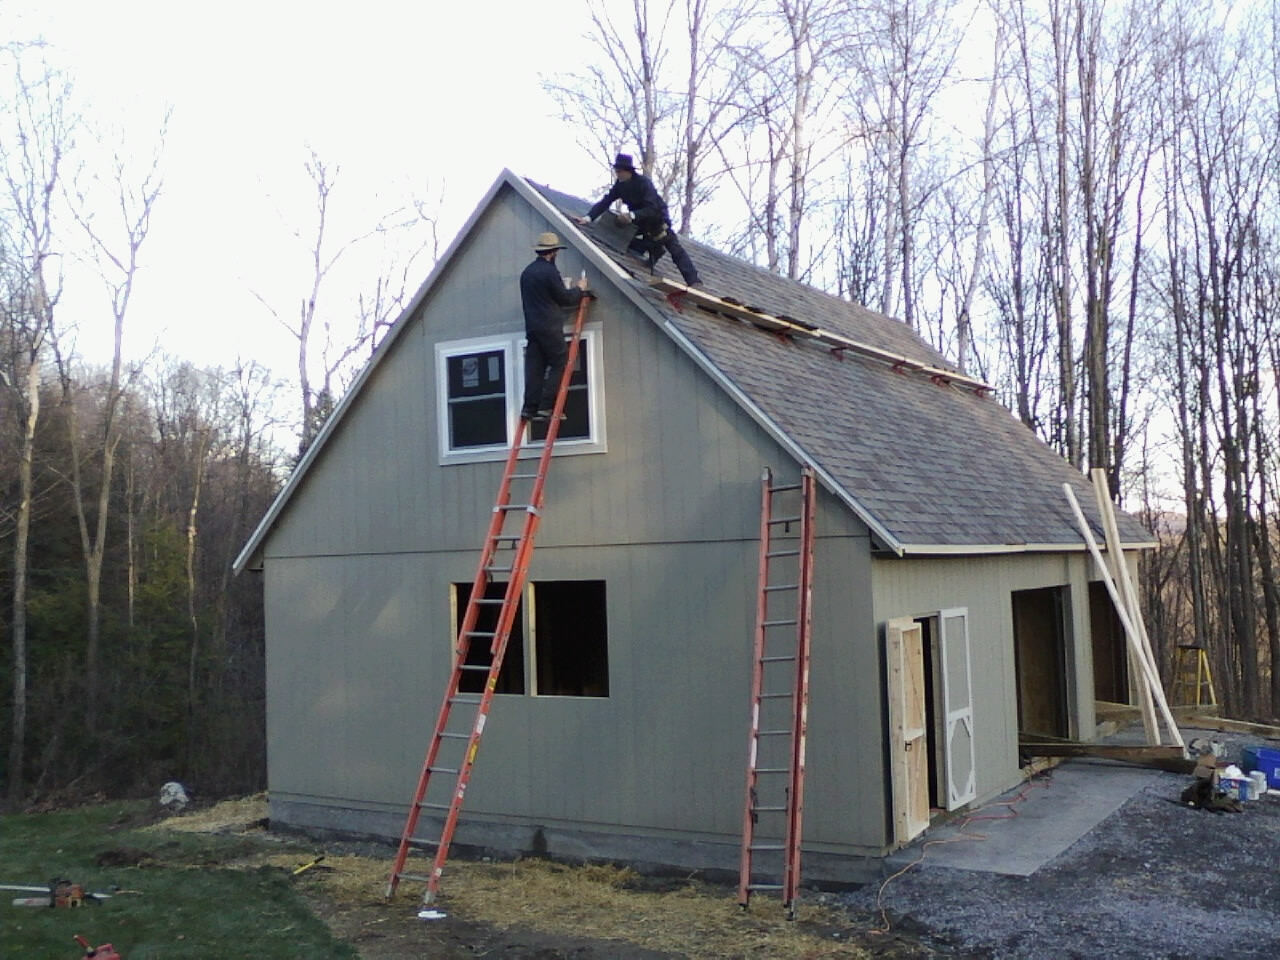 Specialized New Home Construction By Amish Builders: Amish Builders In Pa | Amish Builders Indiana | Amish Builders